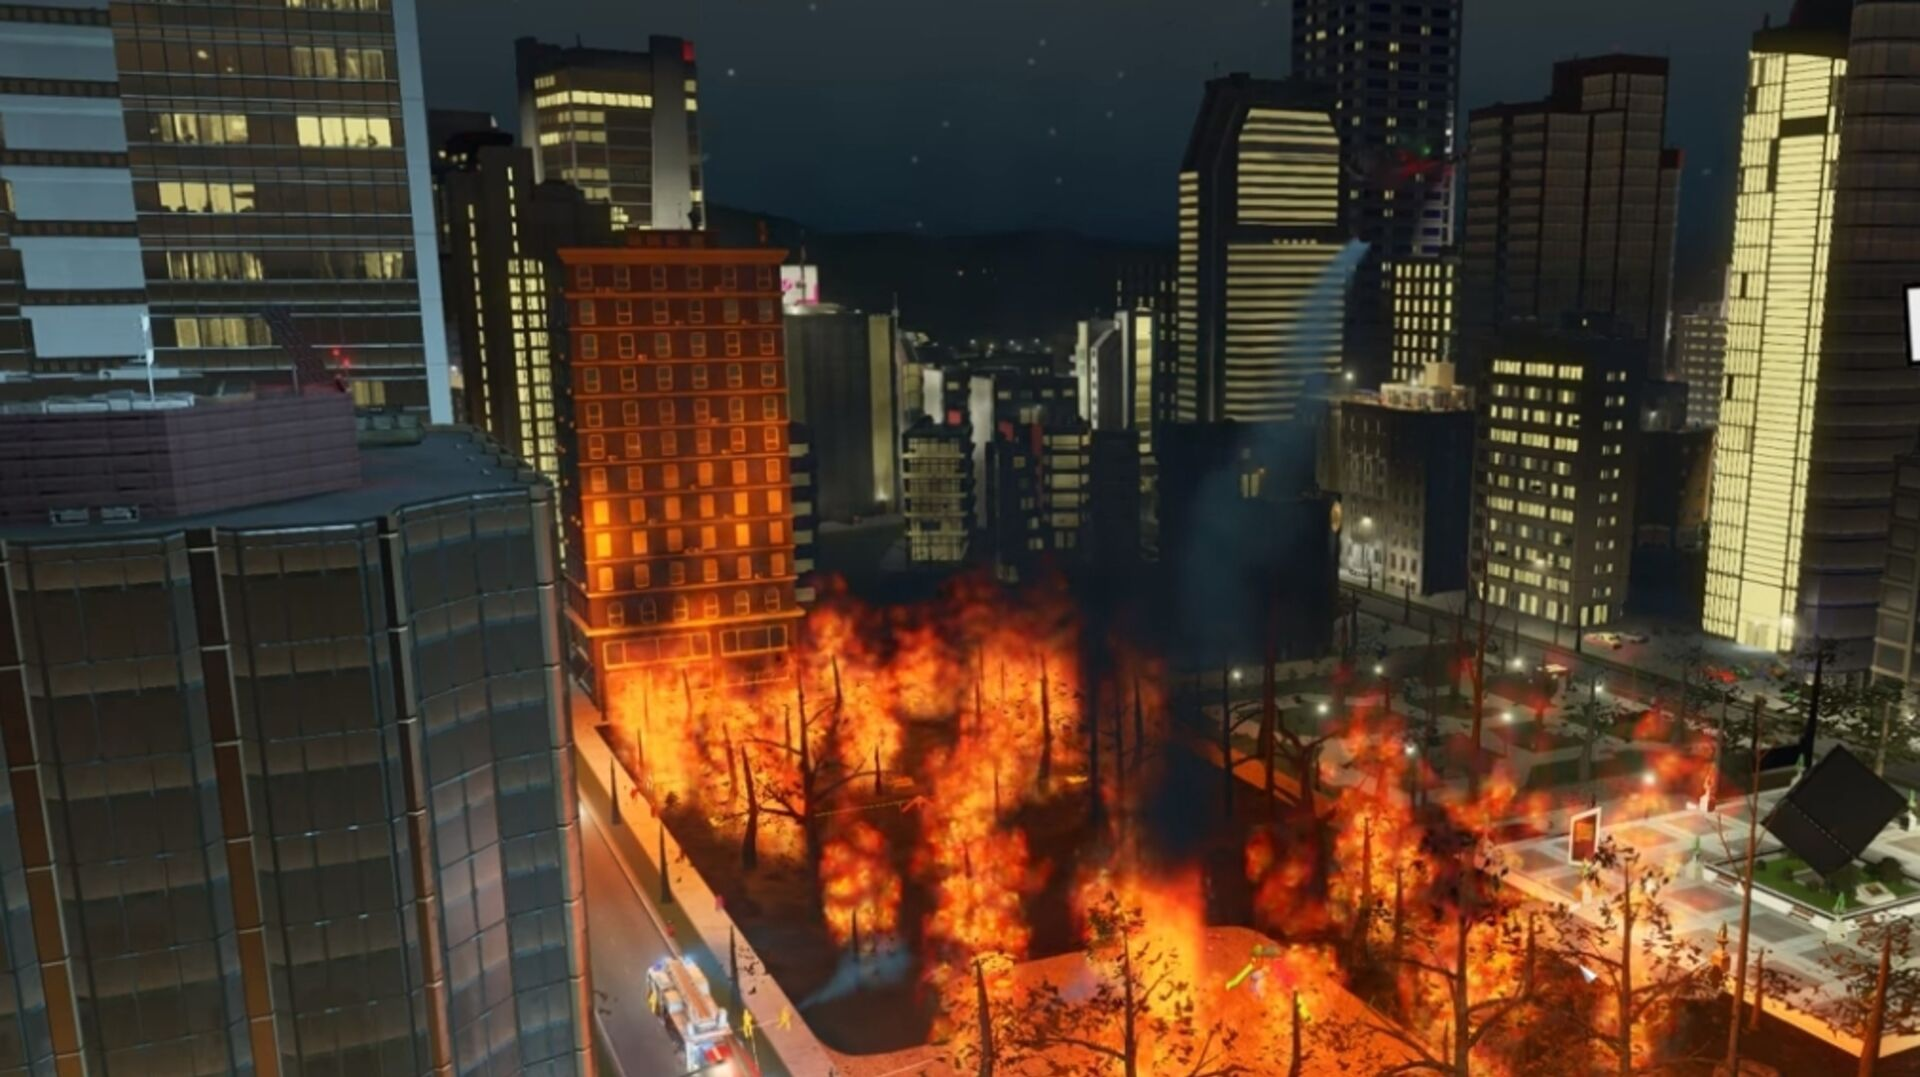 Cities: Skylines for Switch has some disappointing